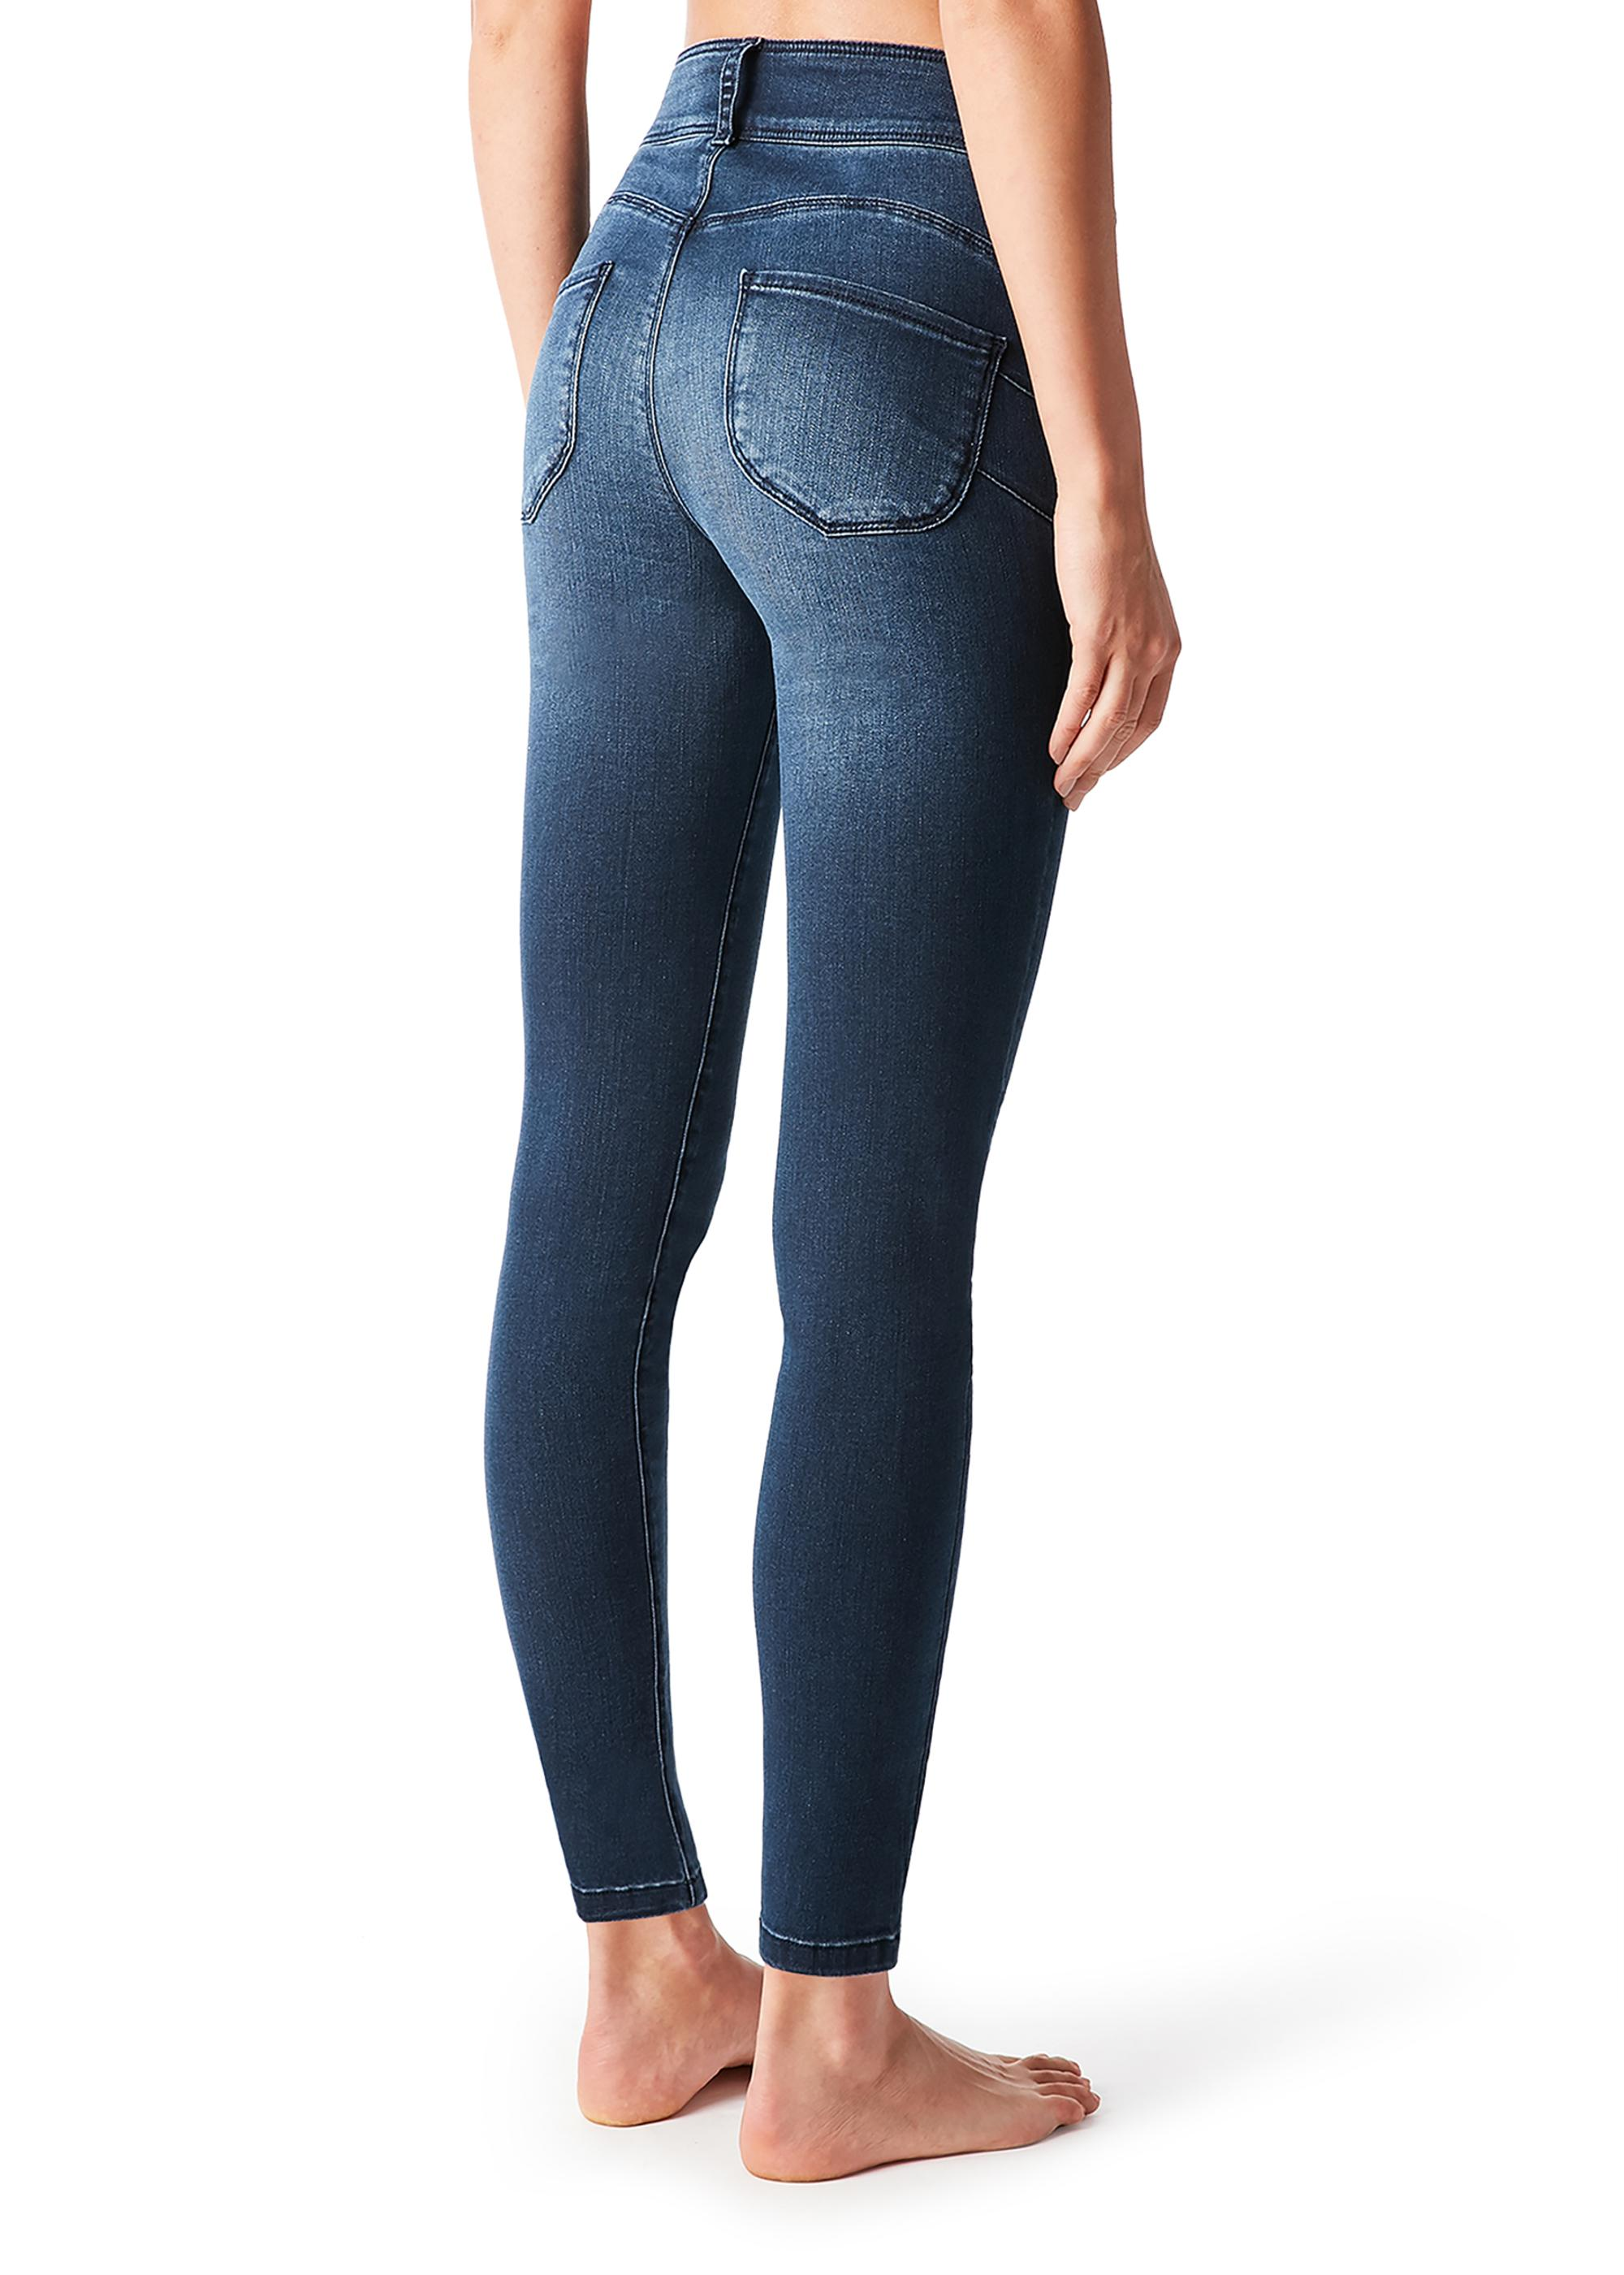 detailed look 2ddfc 5454b High-Waisted Push-Up Jeans